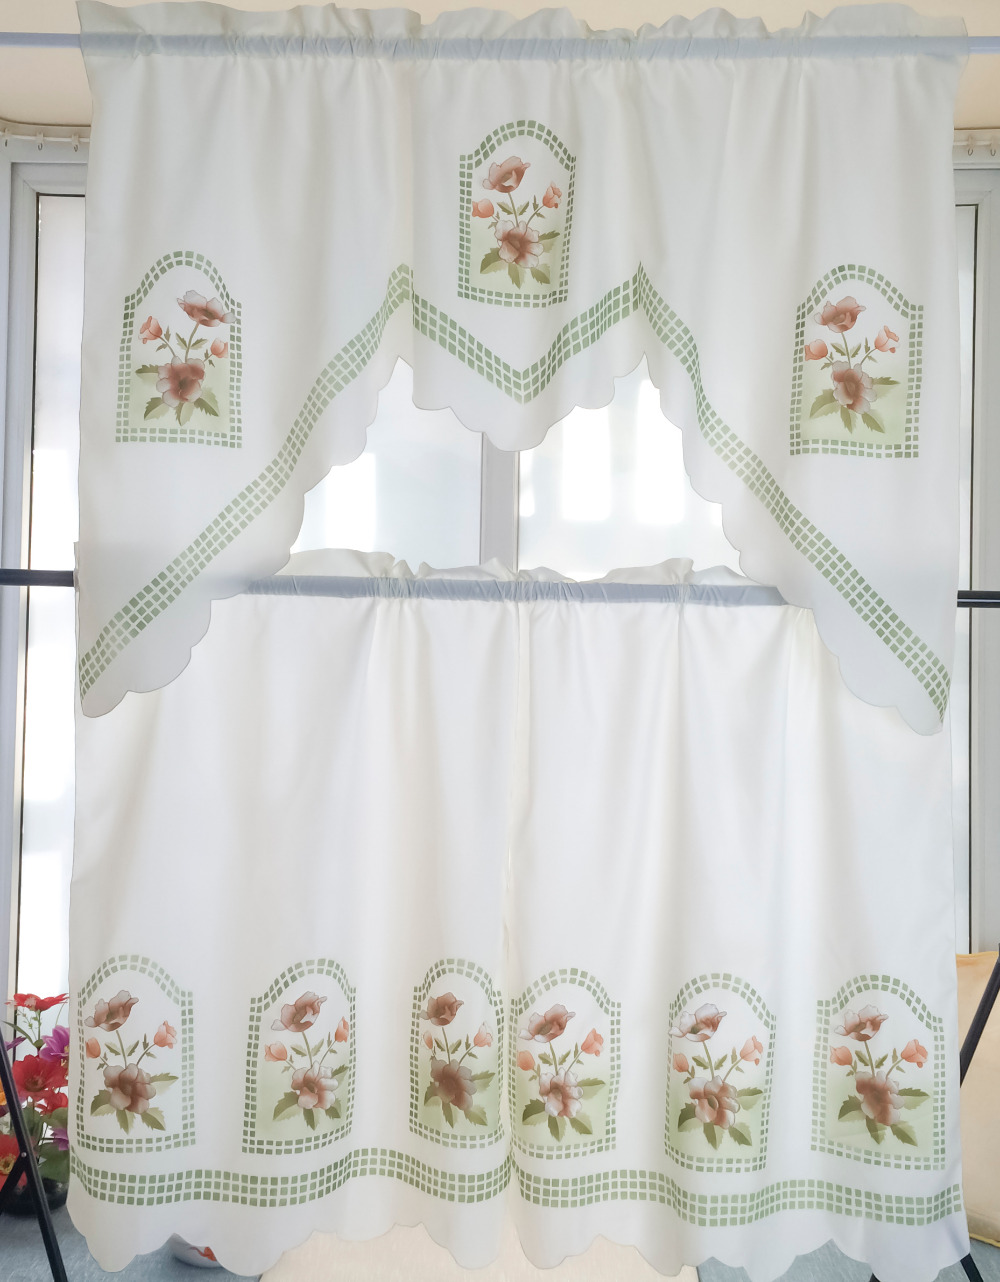 ( 1 set ) Europe Arts Embroidered cloth Tube curtains Decorative Kitchen Cafe , Door Living room Bedroom